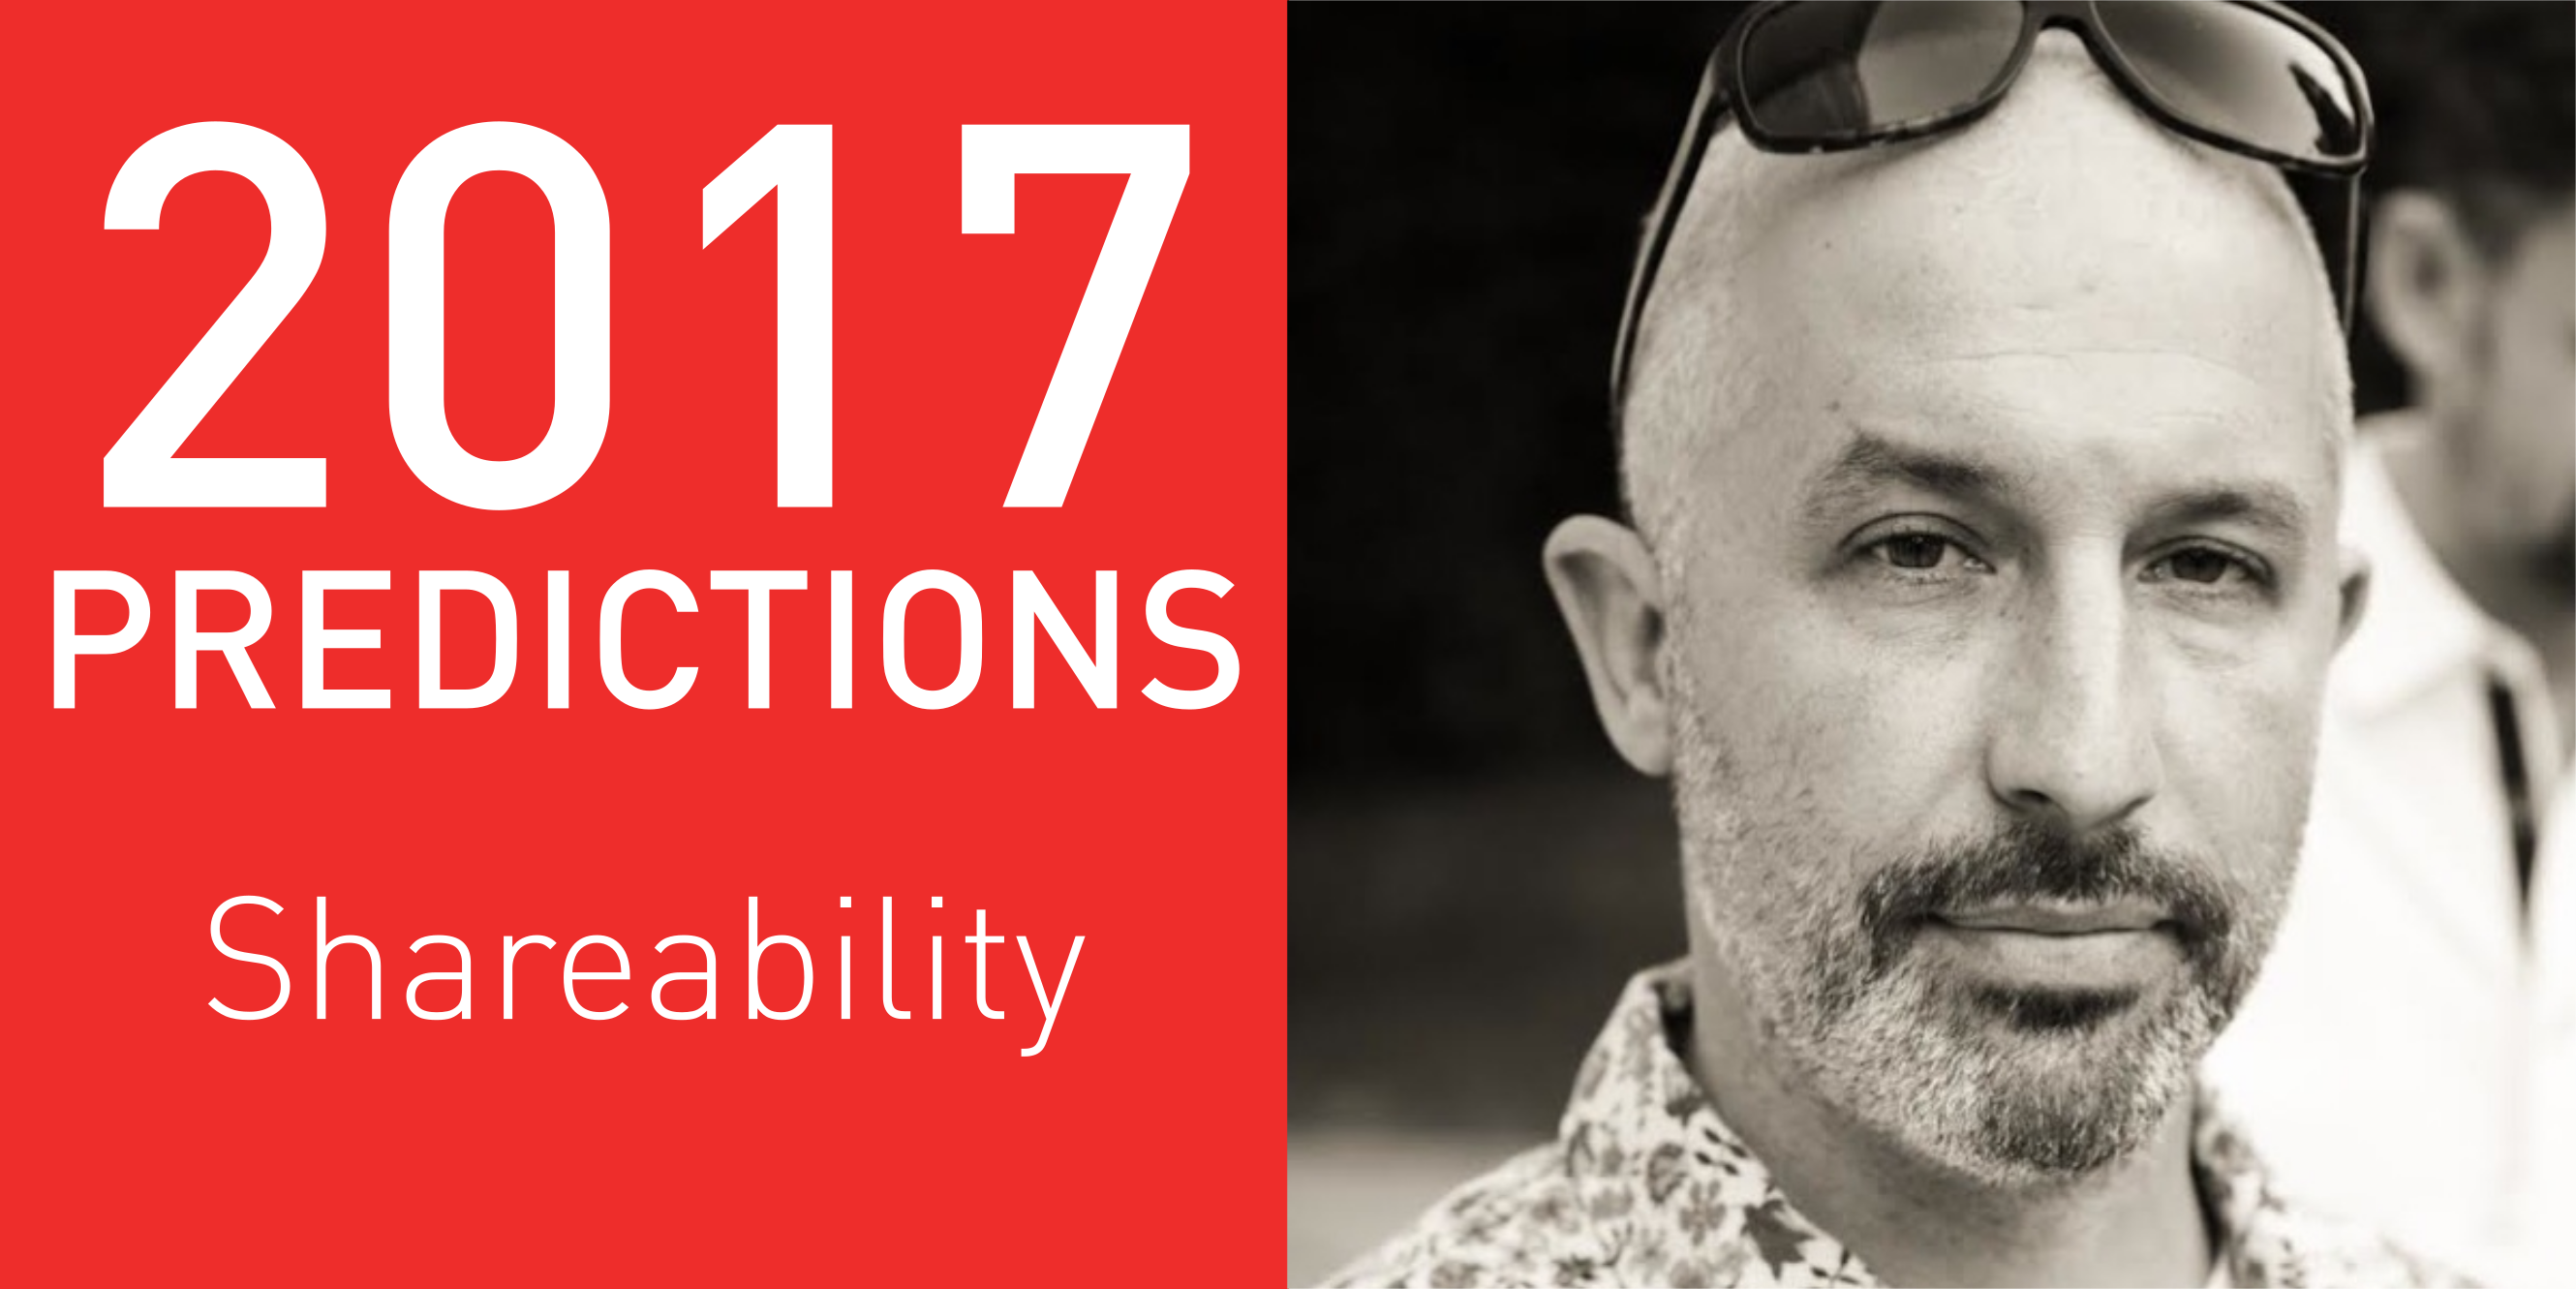 2017 predictions Shareability